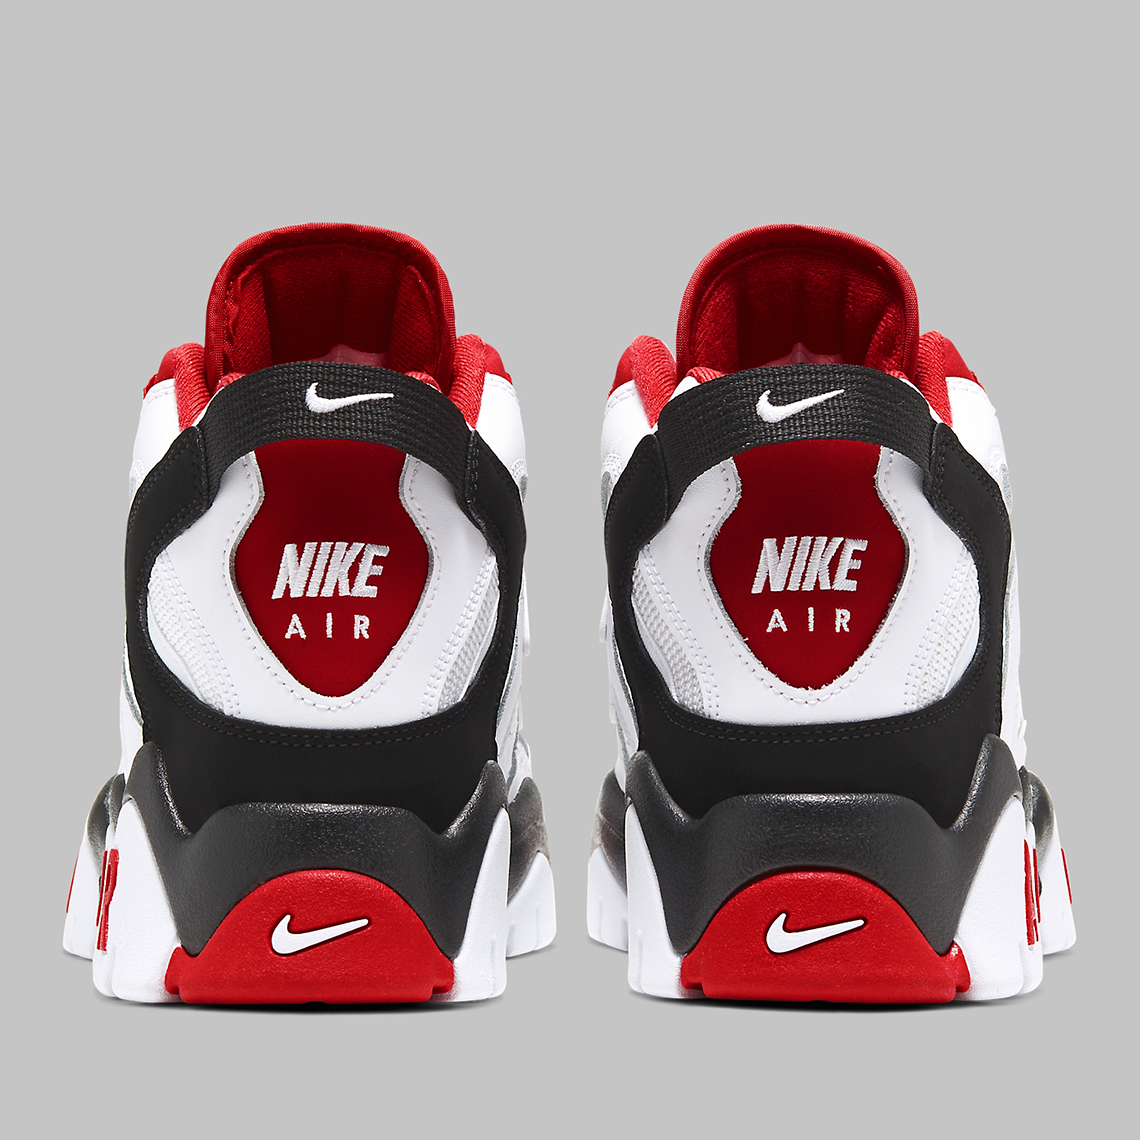 4813 1984 paperweight essay.php]1984 Nike Renew Retaliation TR Men s Training Shoe SportsDirect com